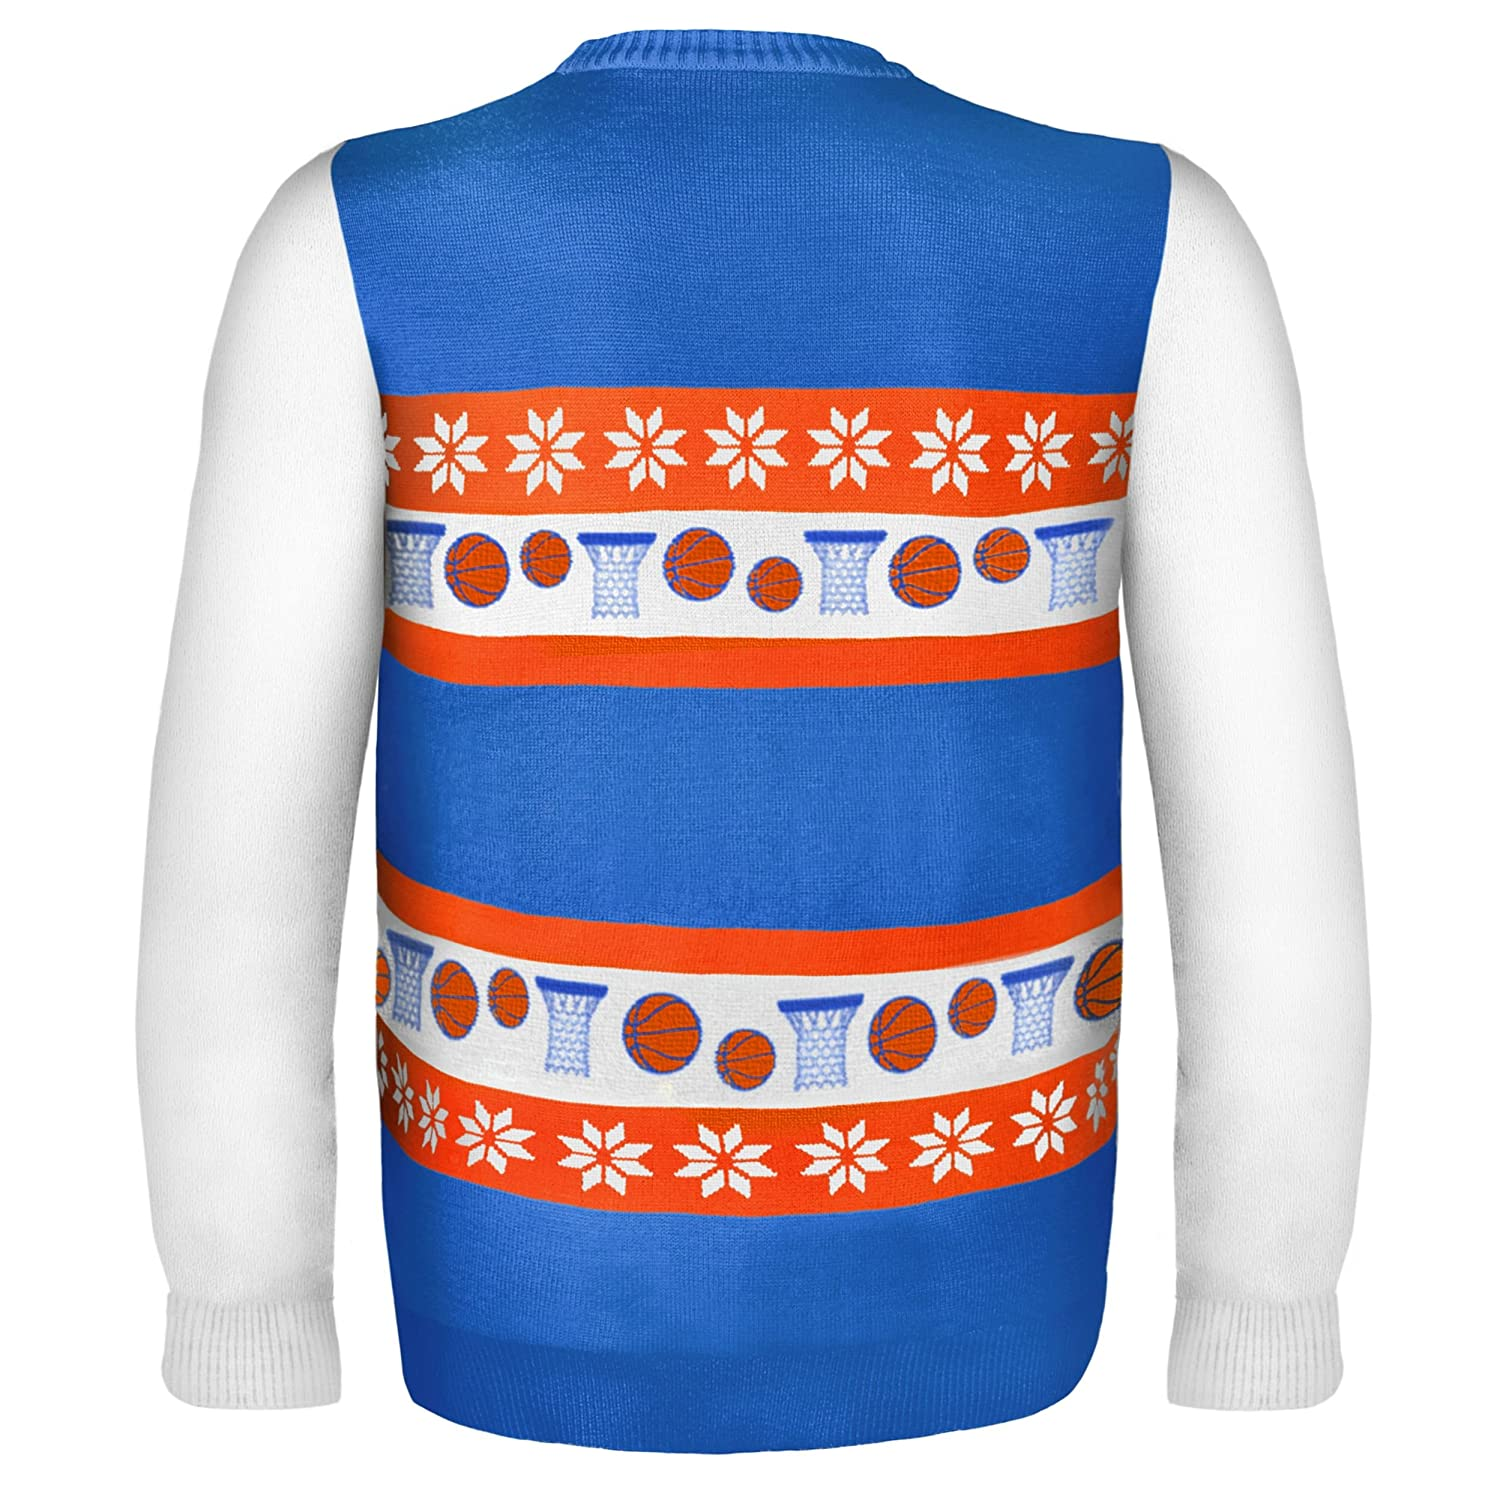 new product 35c6d 01e41 Amazon.com: Oklahoma City Thunder One Too Many Ugly Sweater ...